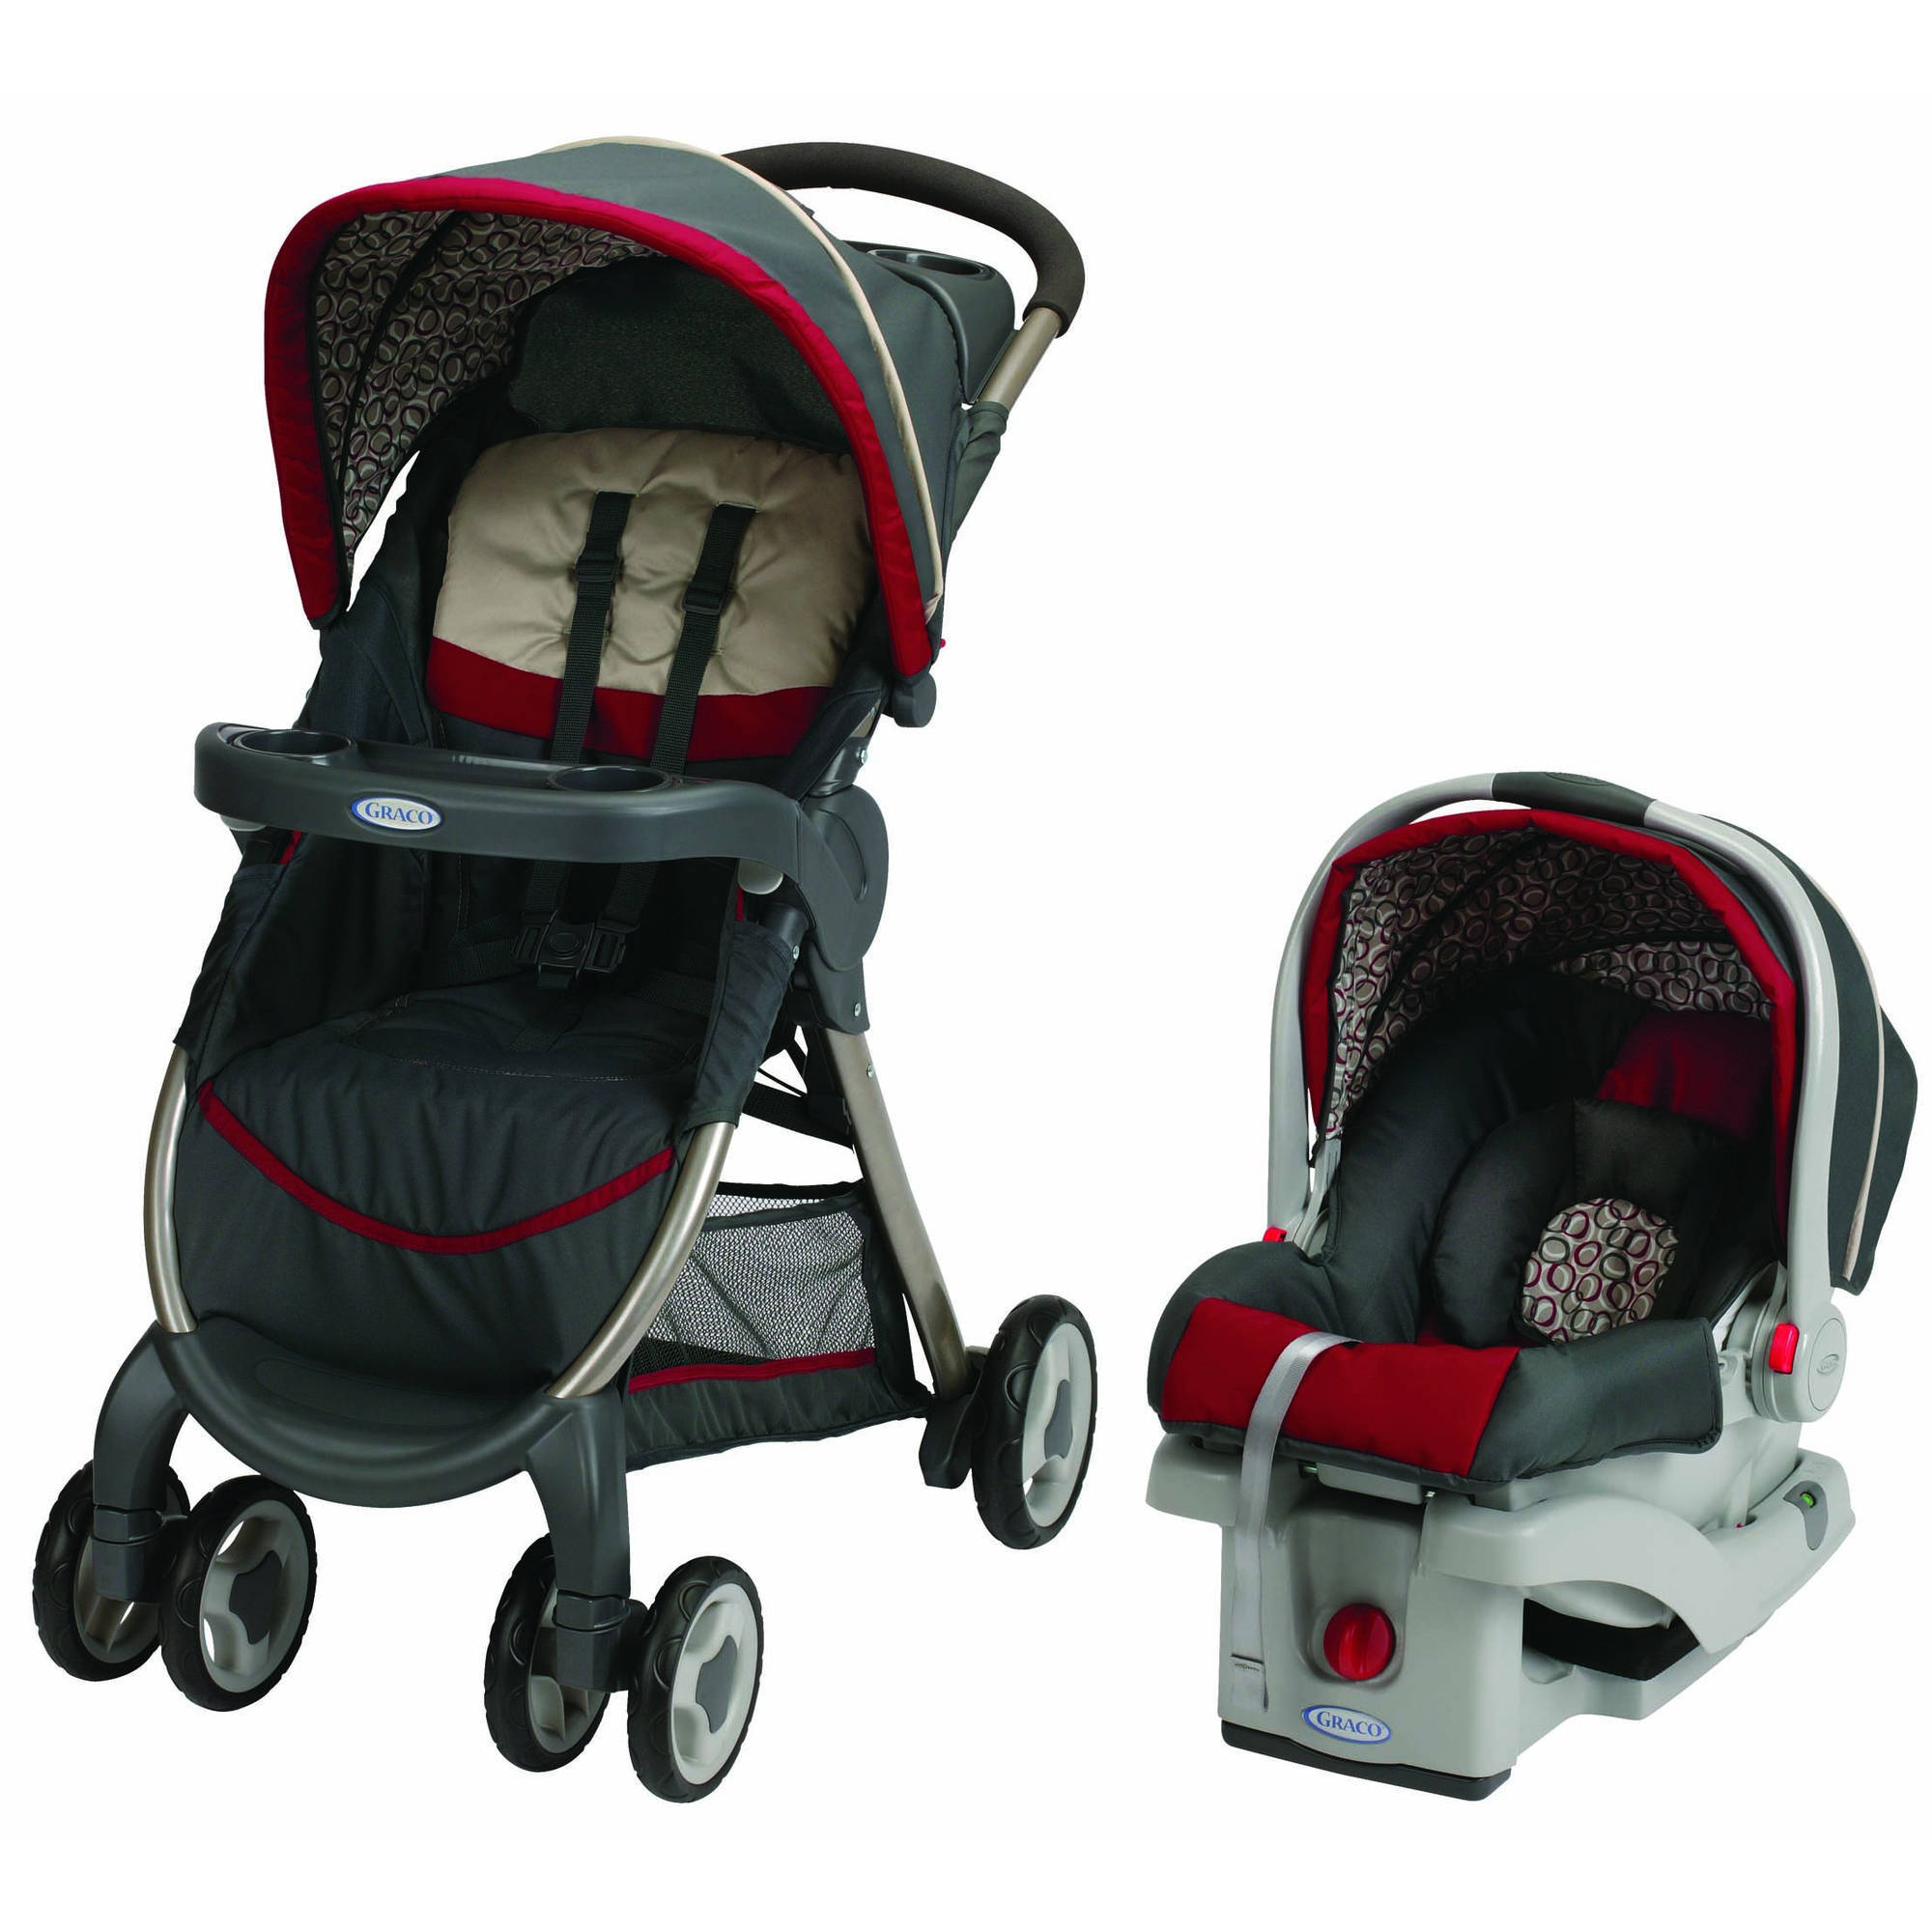 Graco FastAction Fold Click Connect Travel System, Car Seat and Stroller, Finley